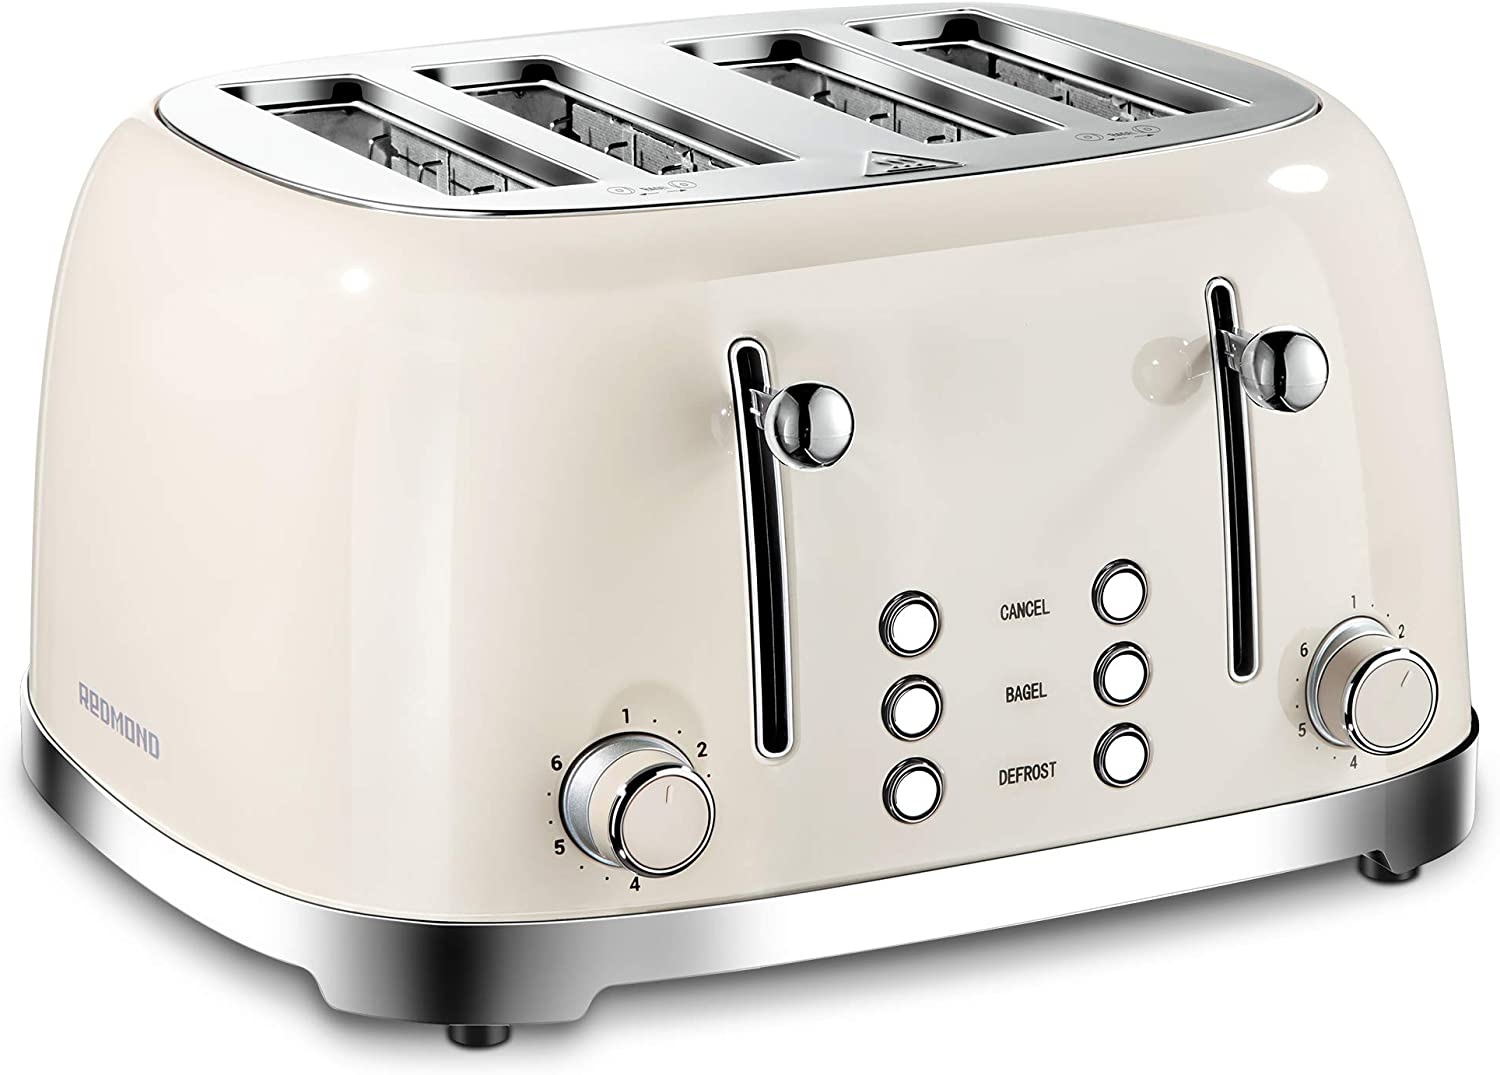 REDMOND 4 Slice Toaster Retro Stainless Steel Toasters with Bagel Defrost Cancel Function, 6 Browning Settings, Cream, ST033